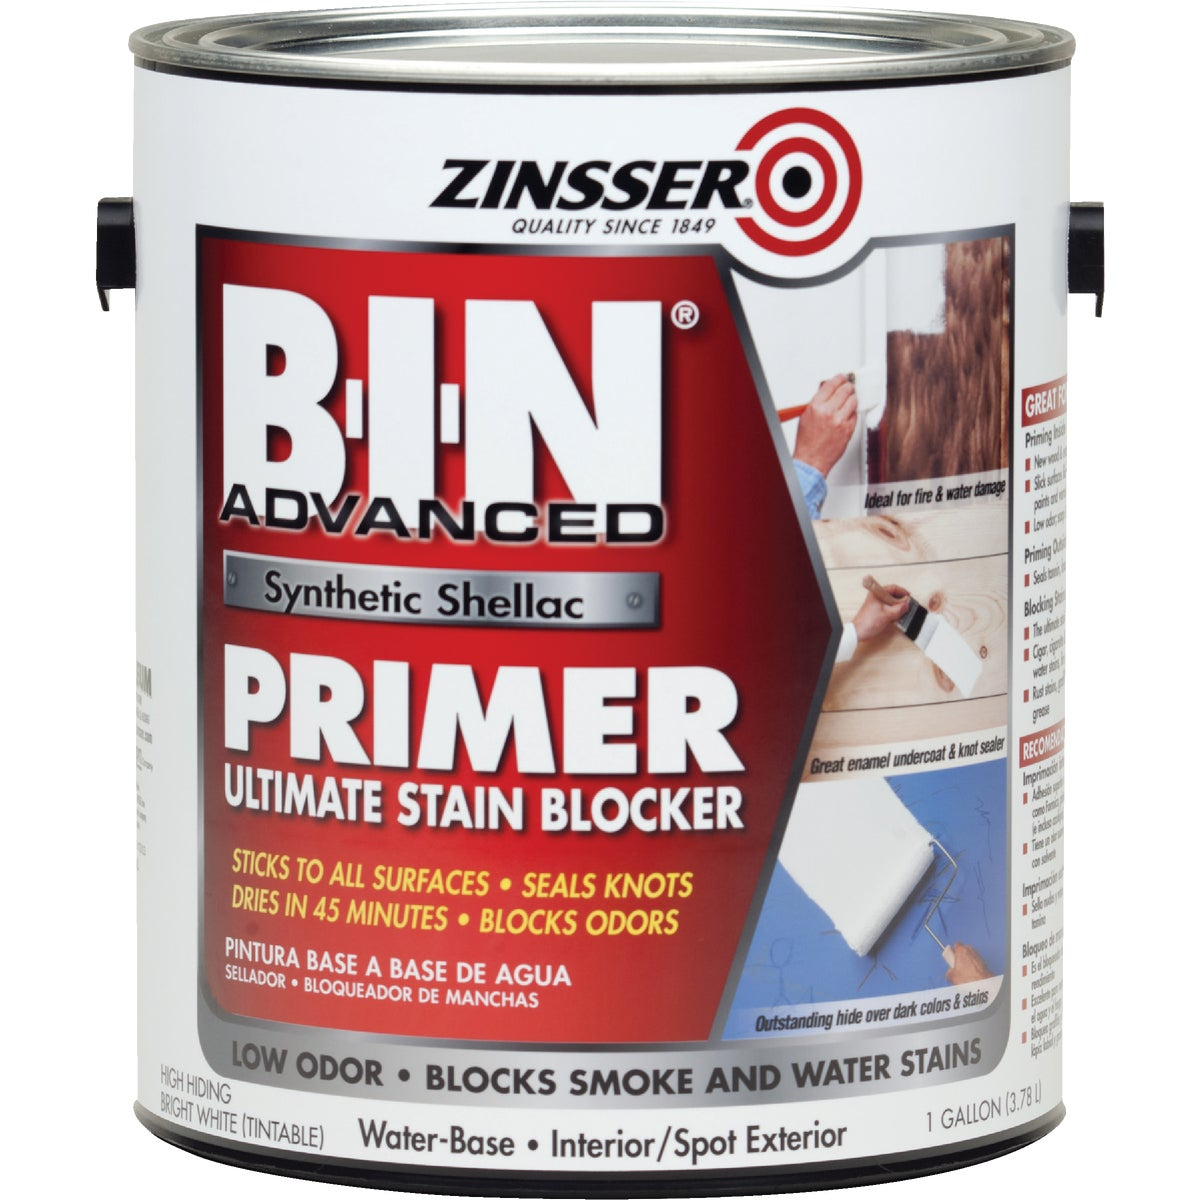 BIN ADVANCED PRIMER